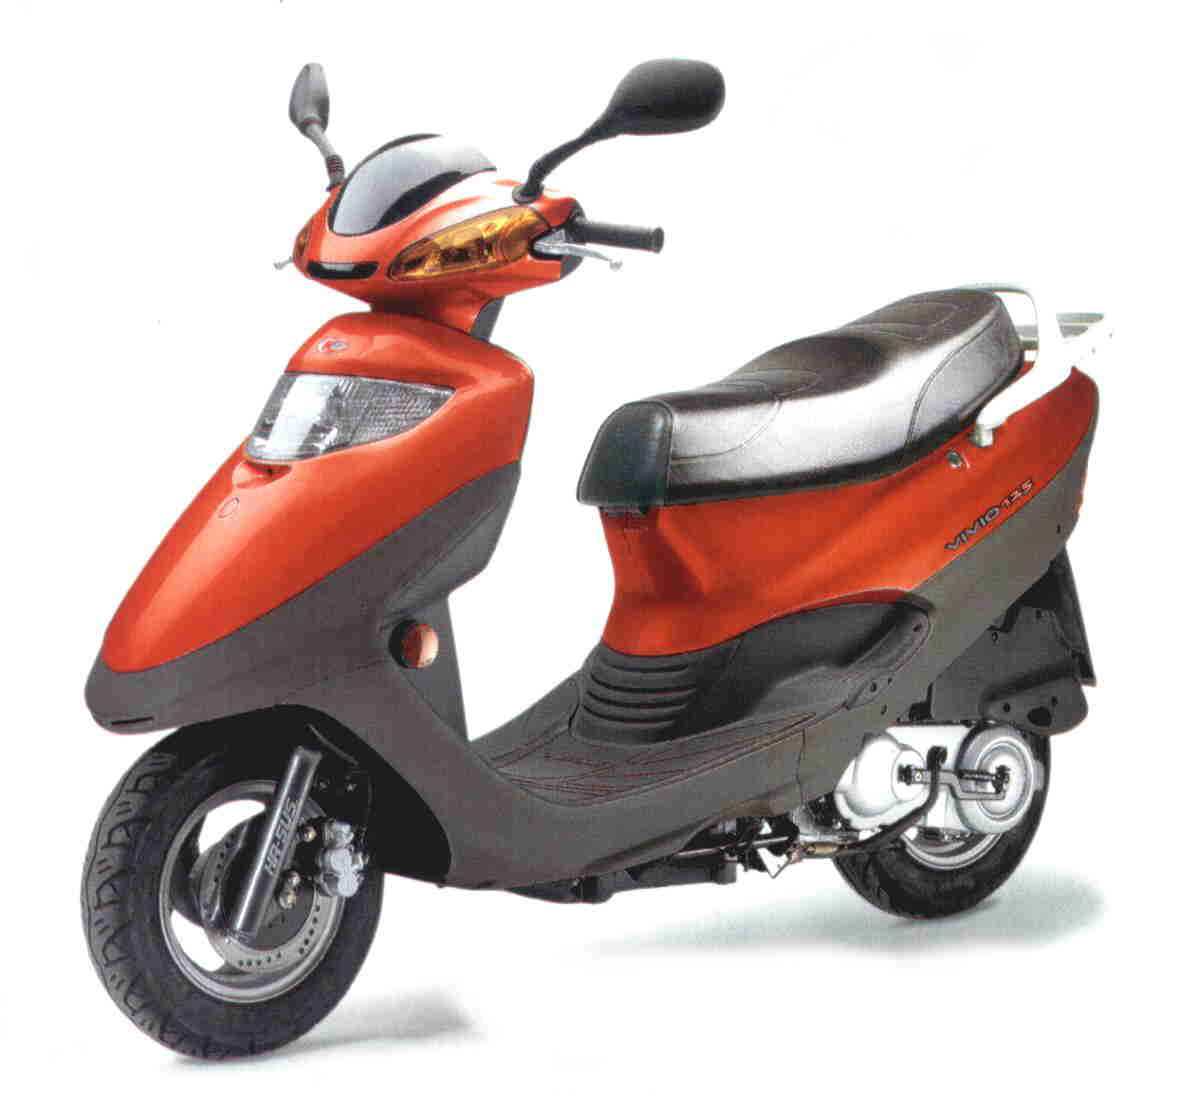 Kymco Heroism 150 1997 images #173092